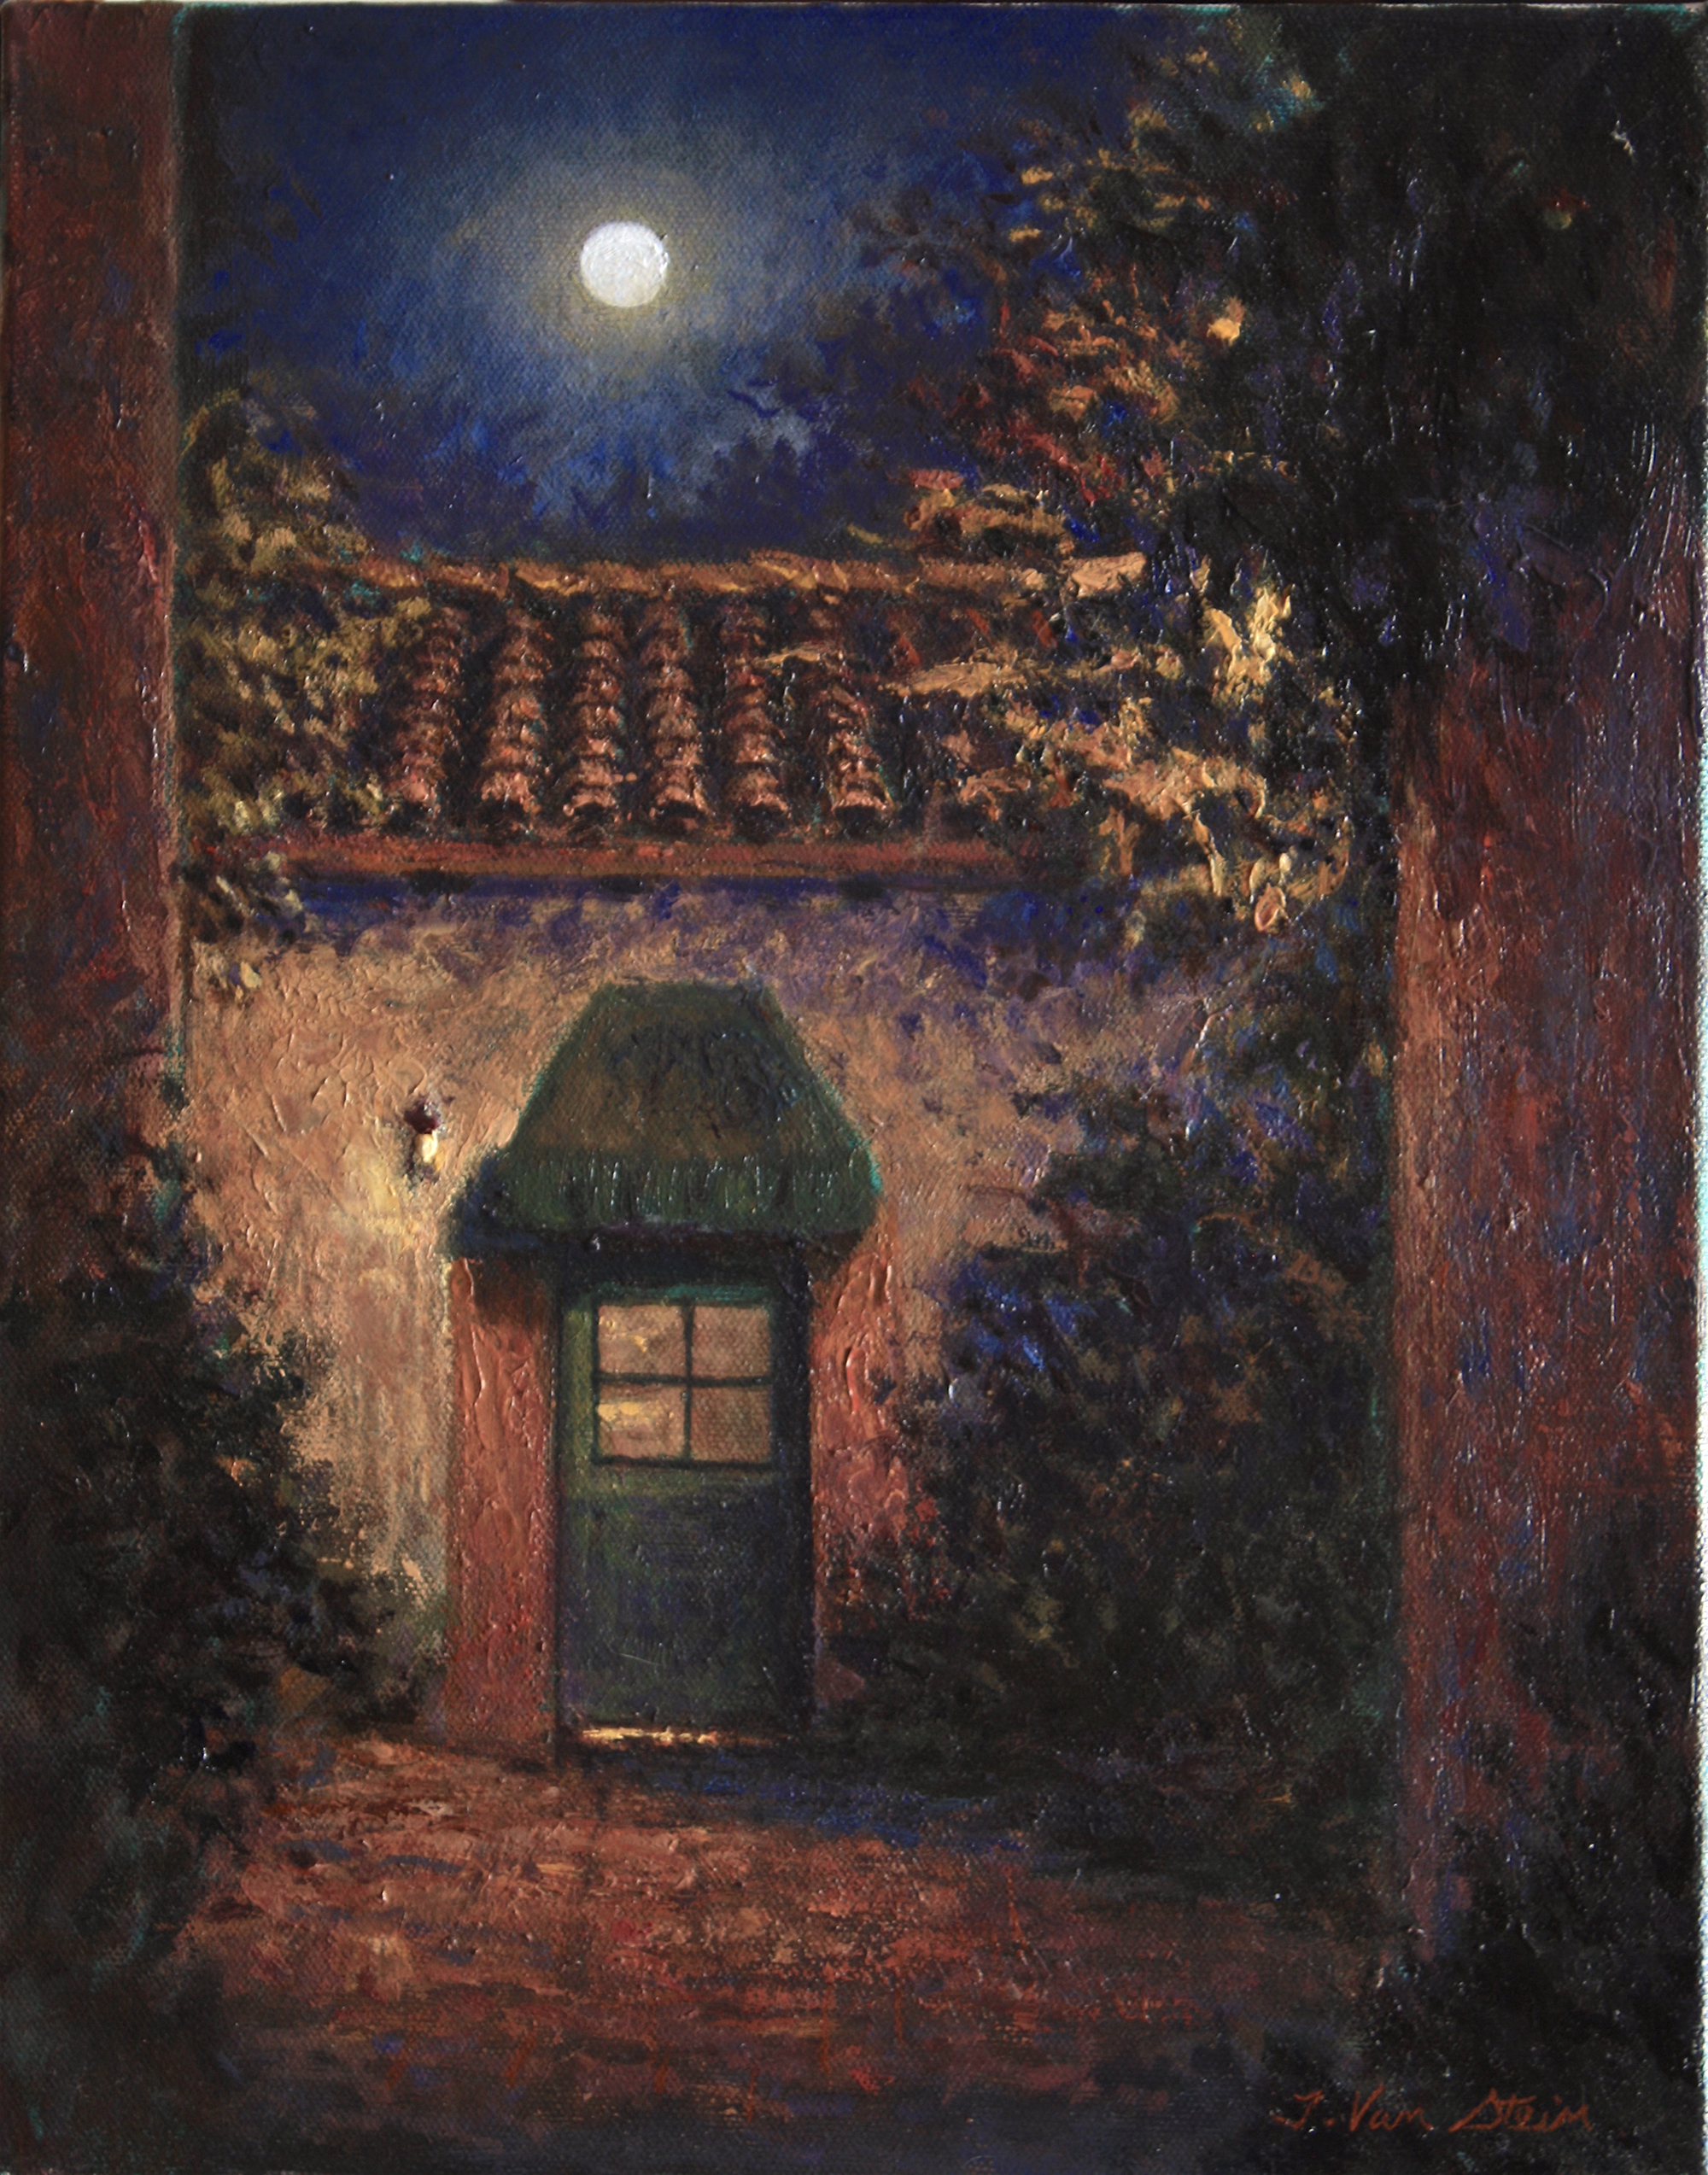 Moon Over the Lugo Adobe,  14x11,  oil on canvas,  2019